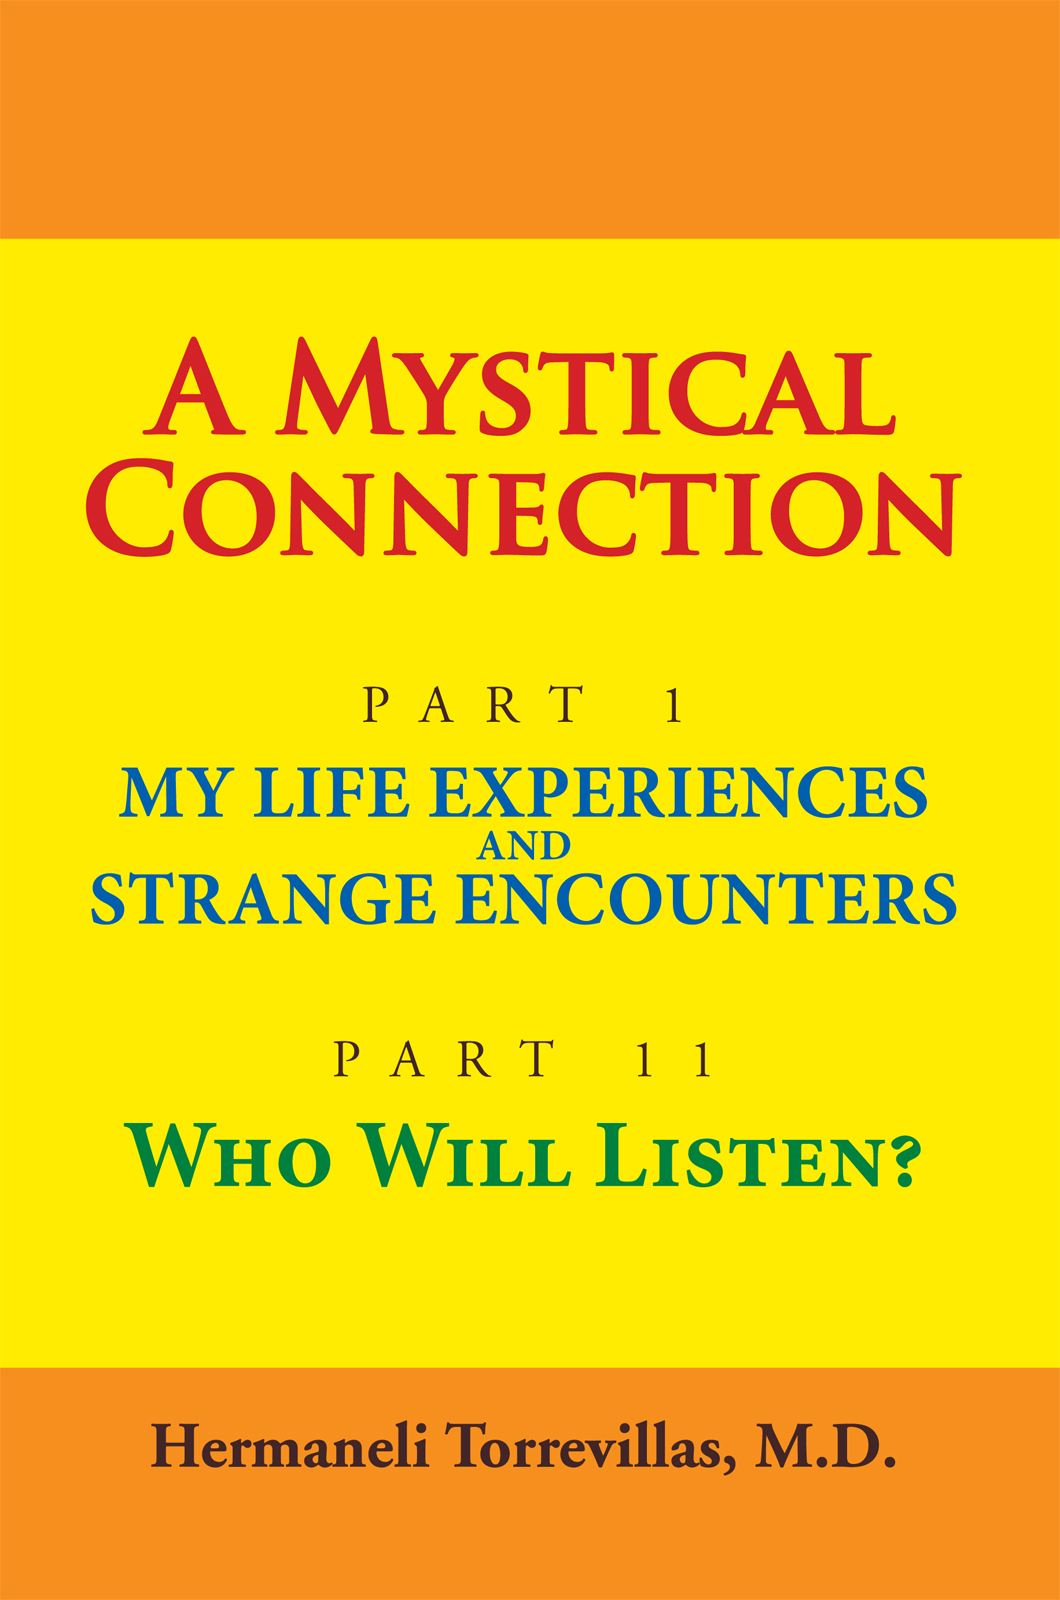 A  MYSTICAL CONNECTION By: M.D. Hermaneli Torrevillas